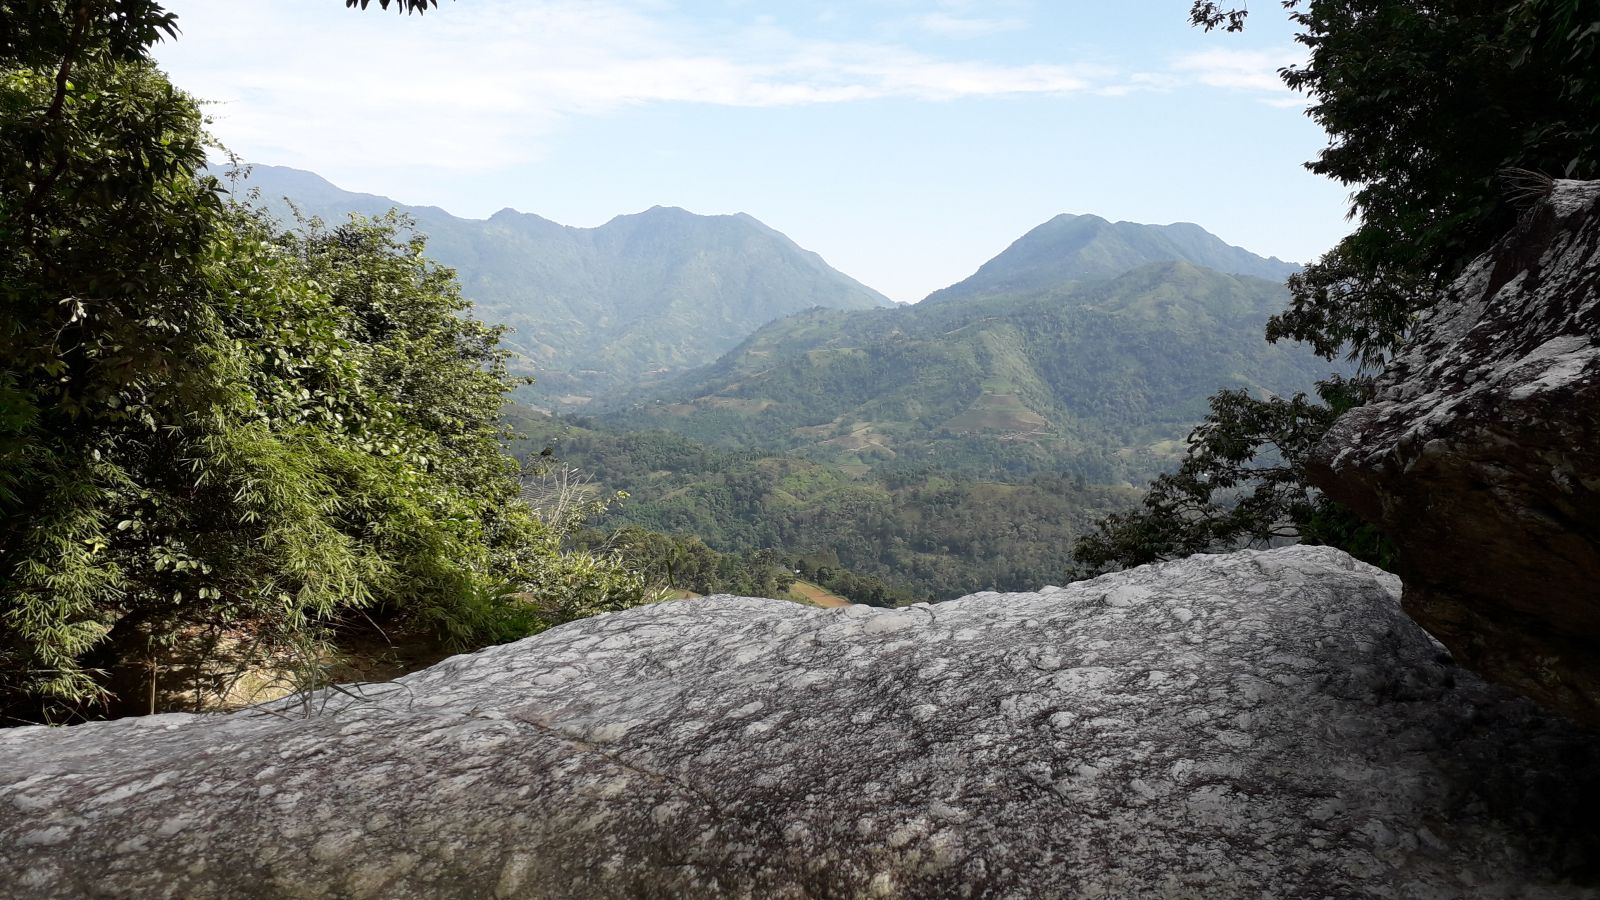 Hoang Su Phi landscape of mountain & valley